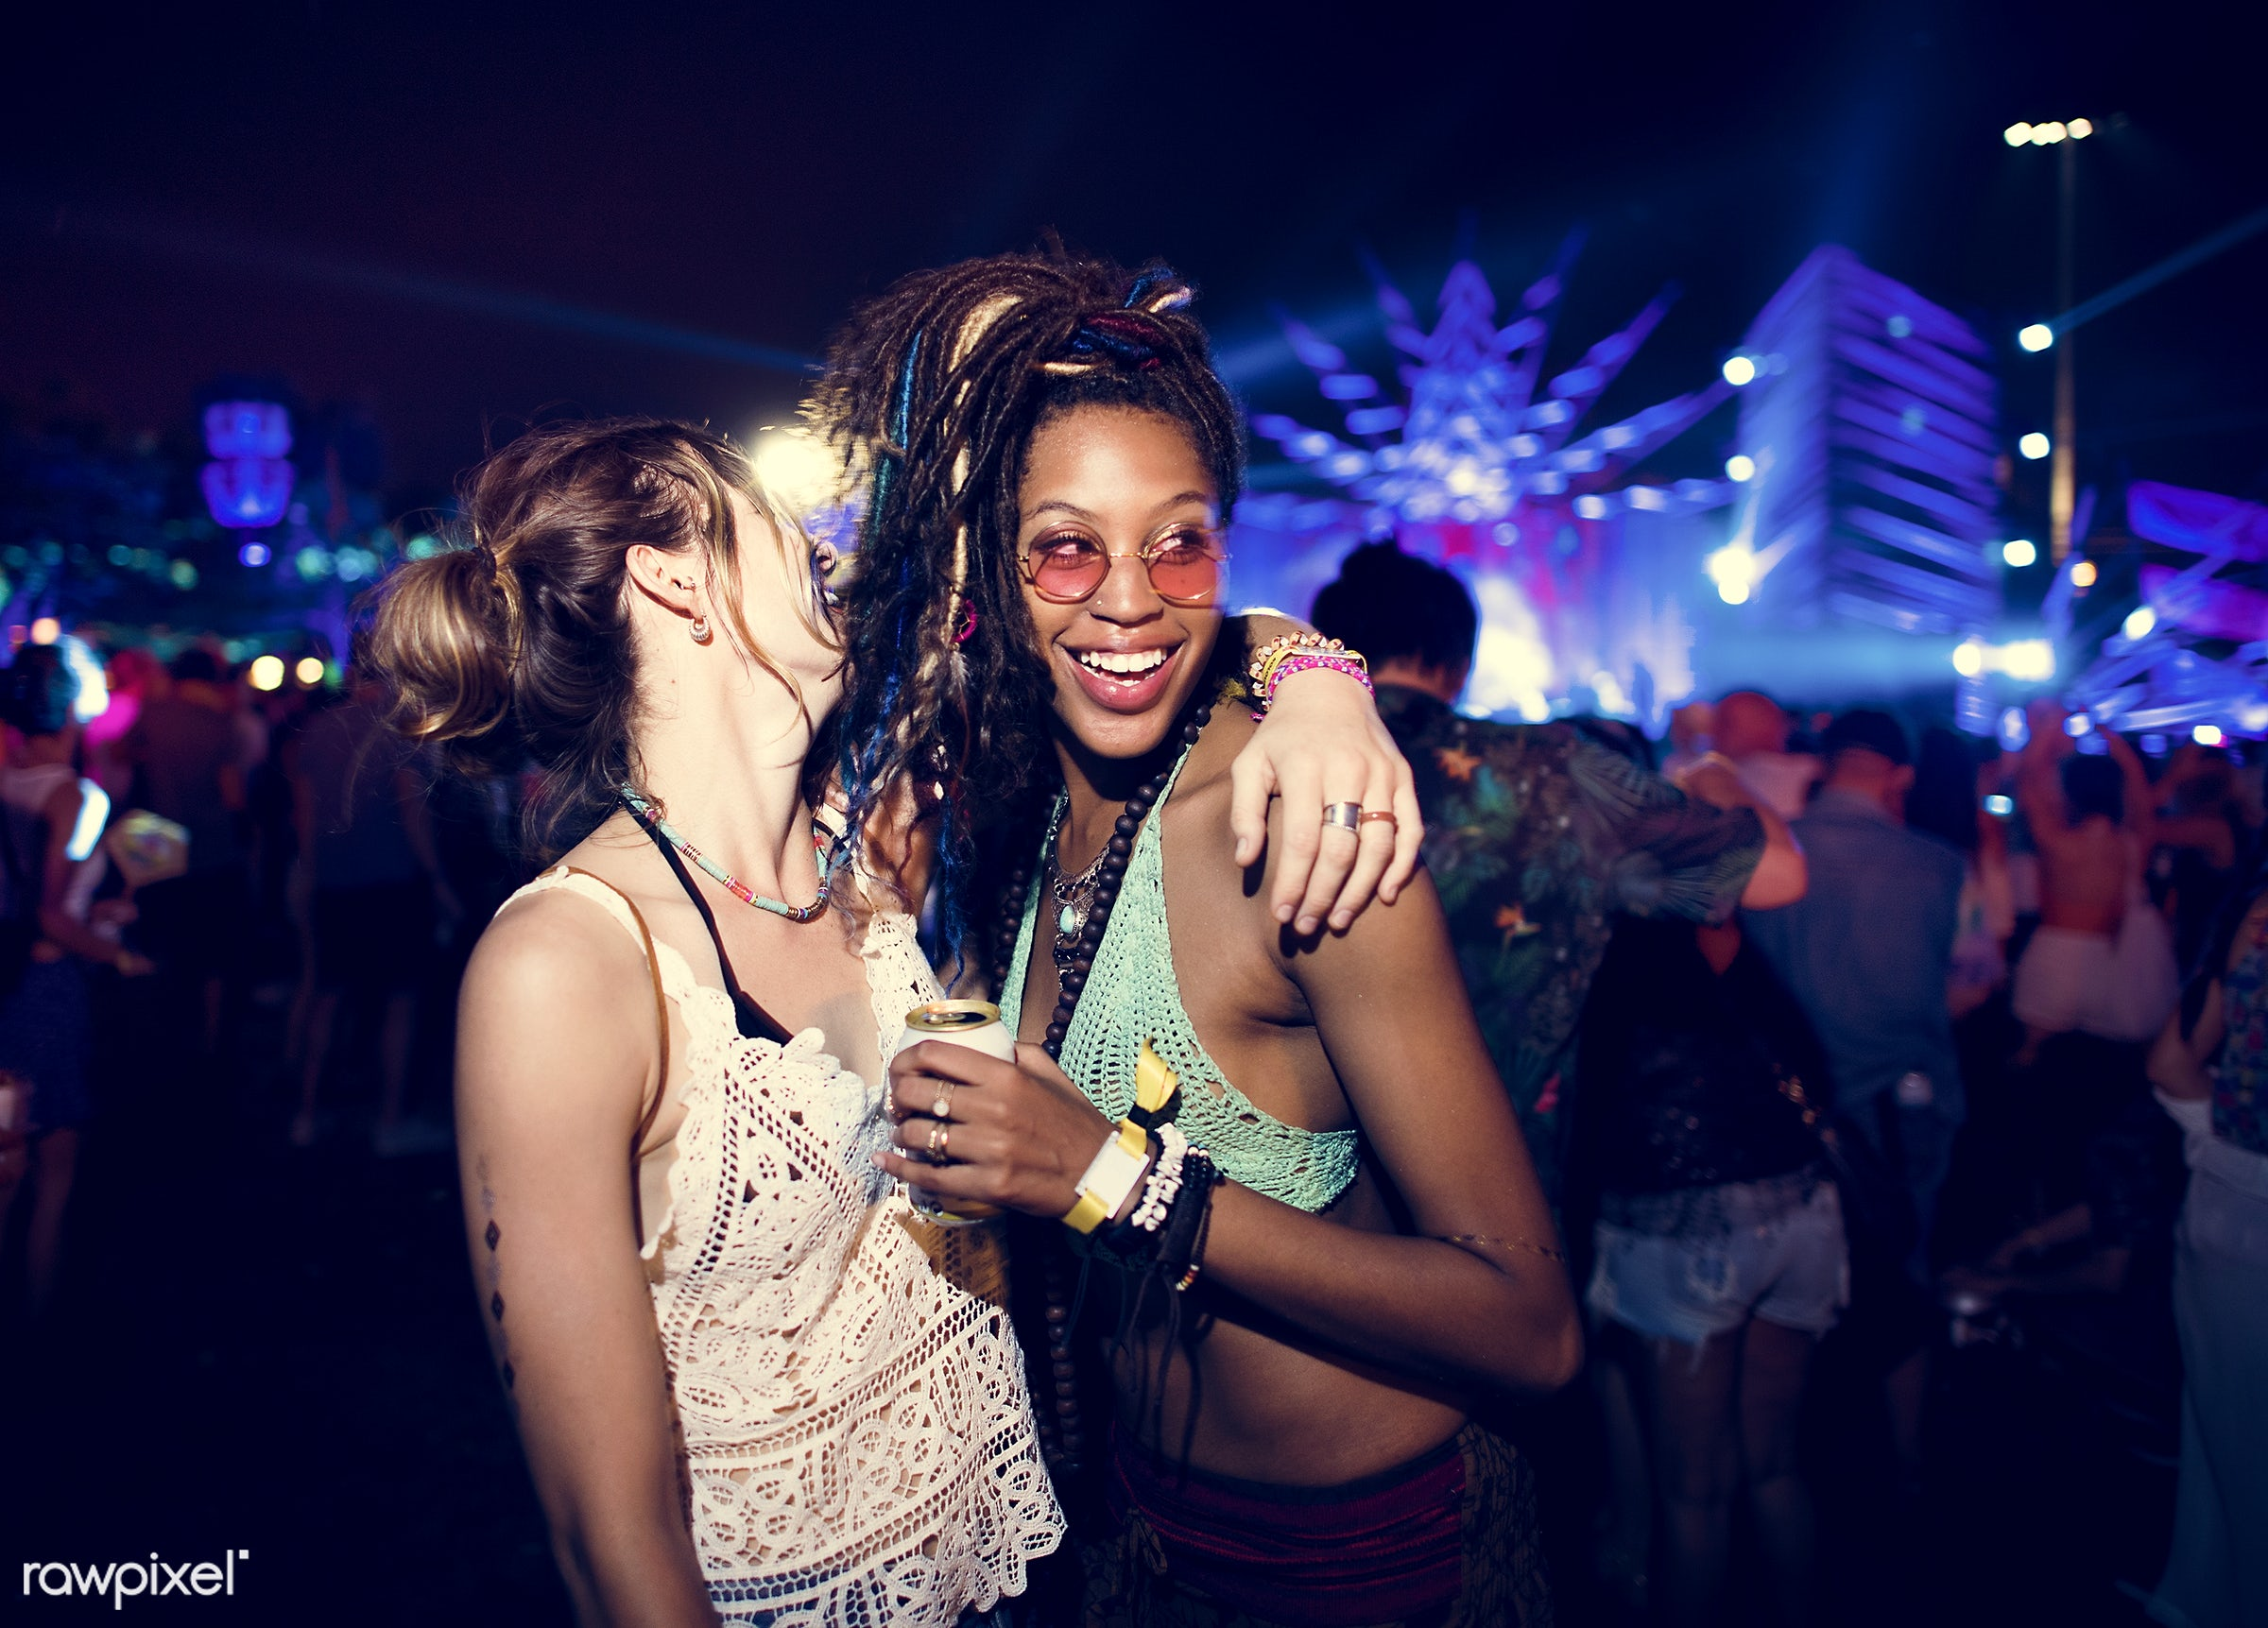 concert, person, drinking, party, people, together, beer, friends, woman, event, lifestyle, drink, friendship, weekend, hold...